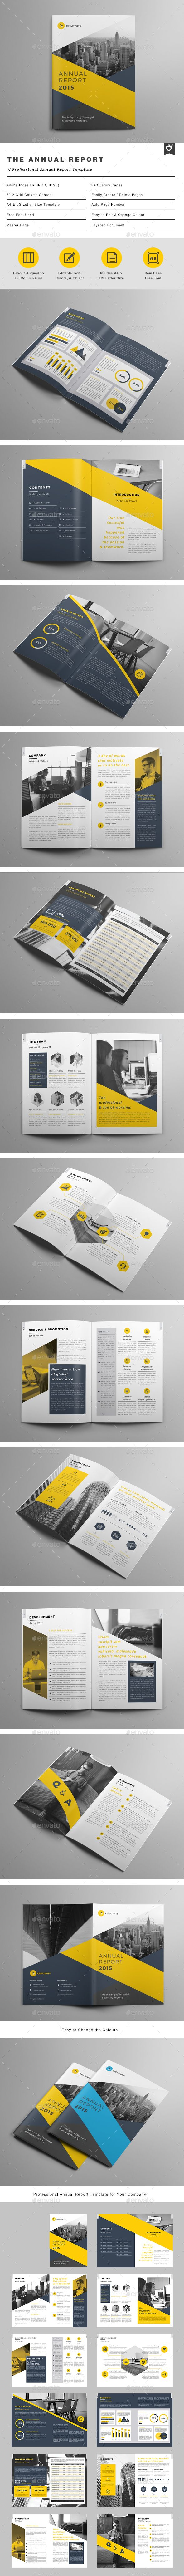 The Annual Report Template InDesign INDD #design Download: http ...